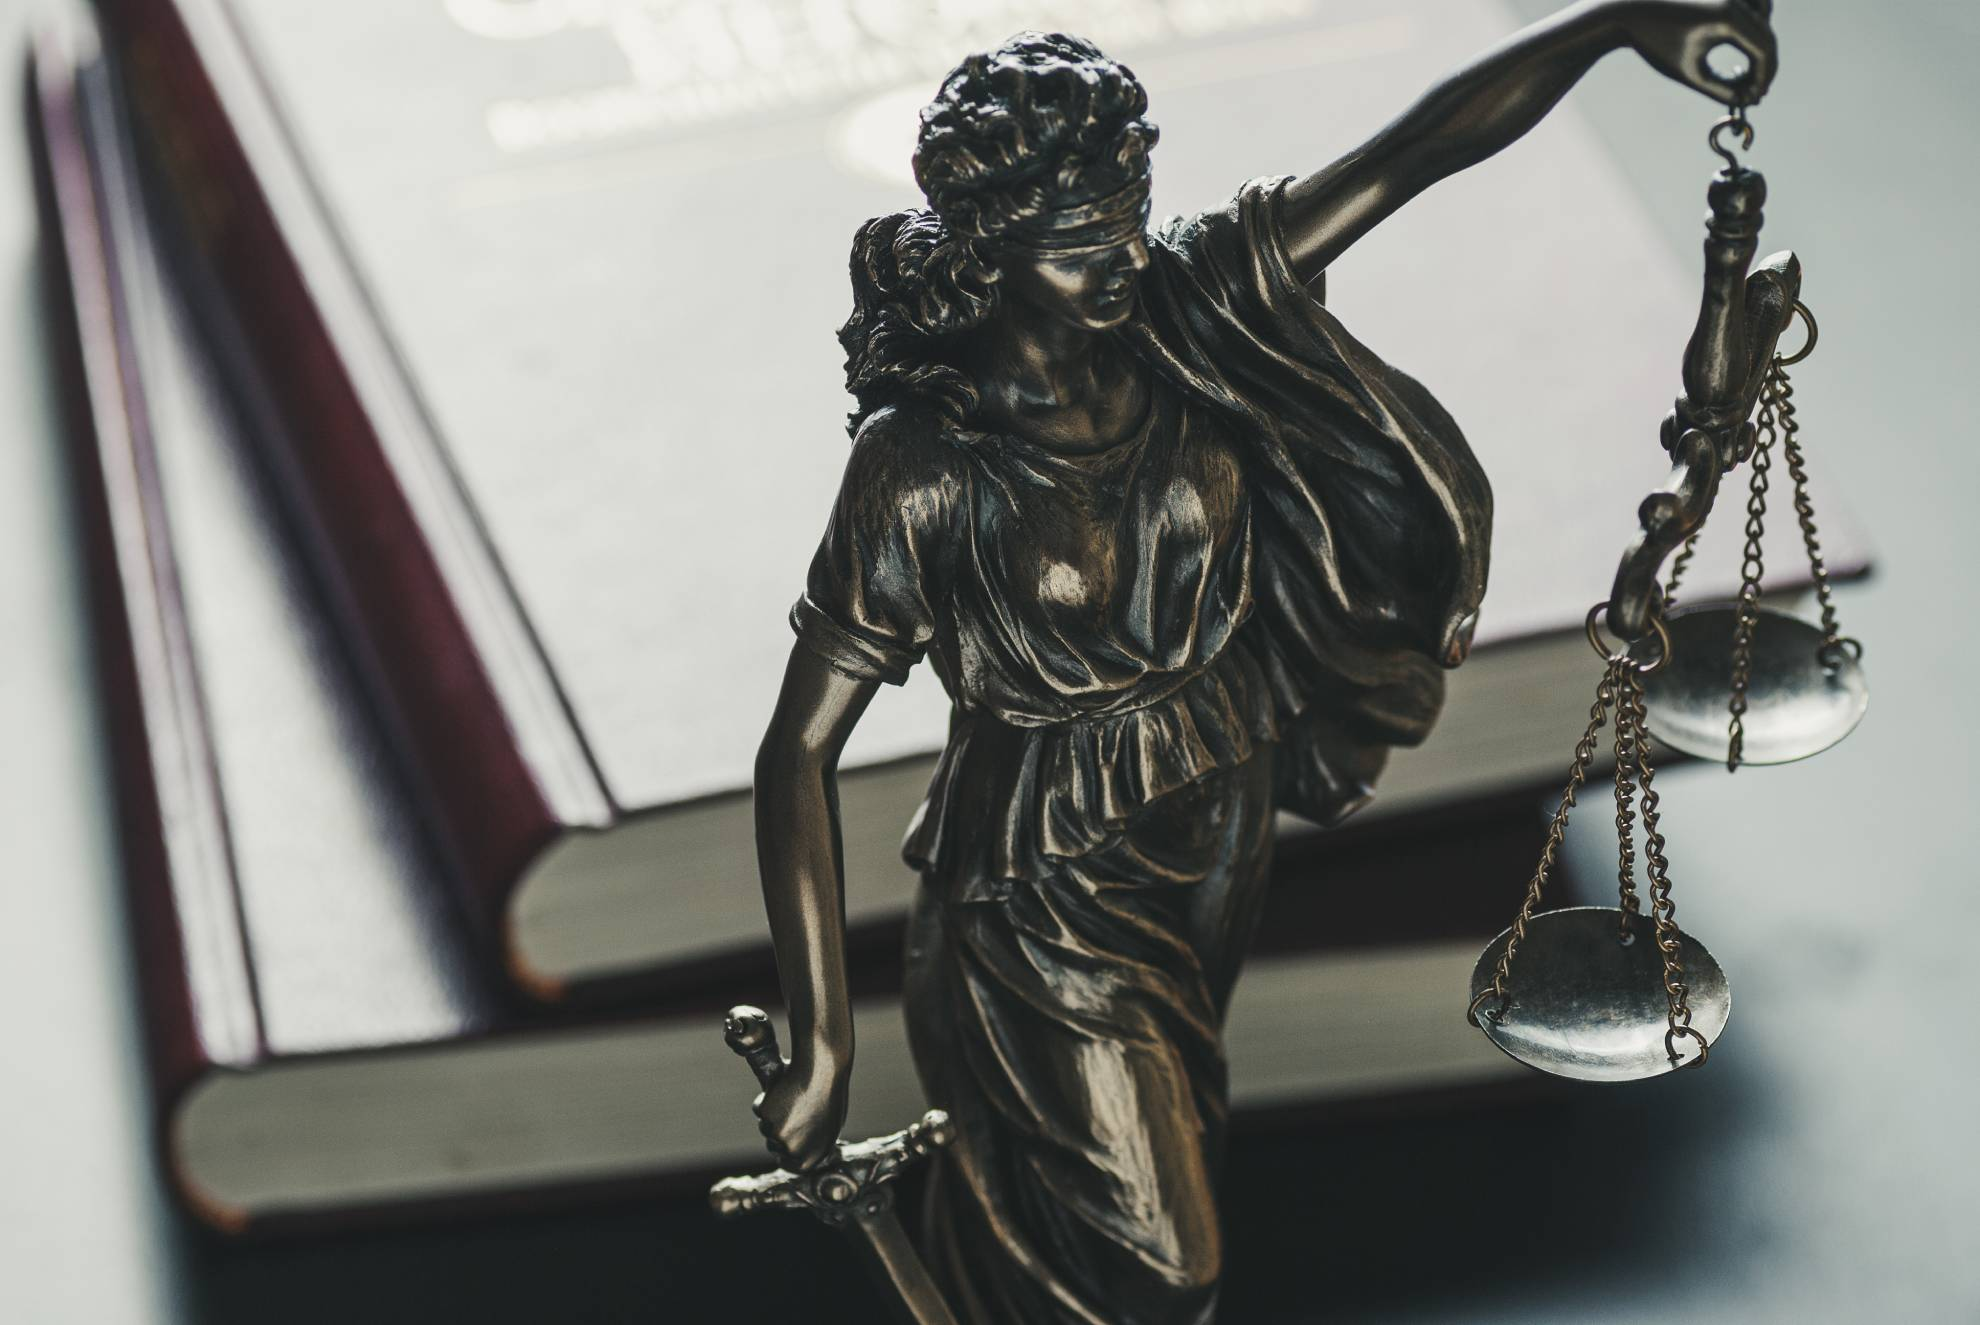 statue-of-the-figure-of-justice-holding-scales-LBA65Z3 (1)